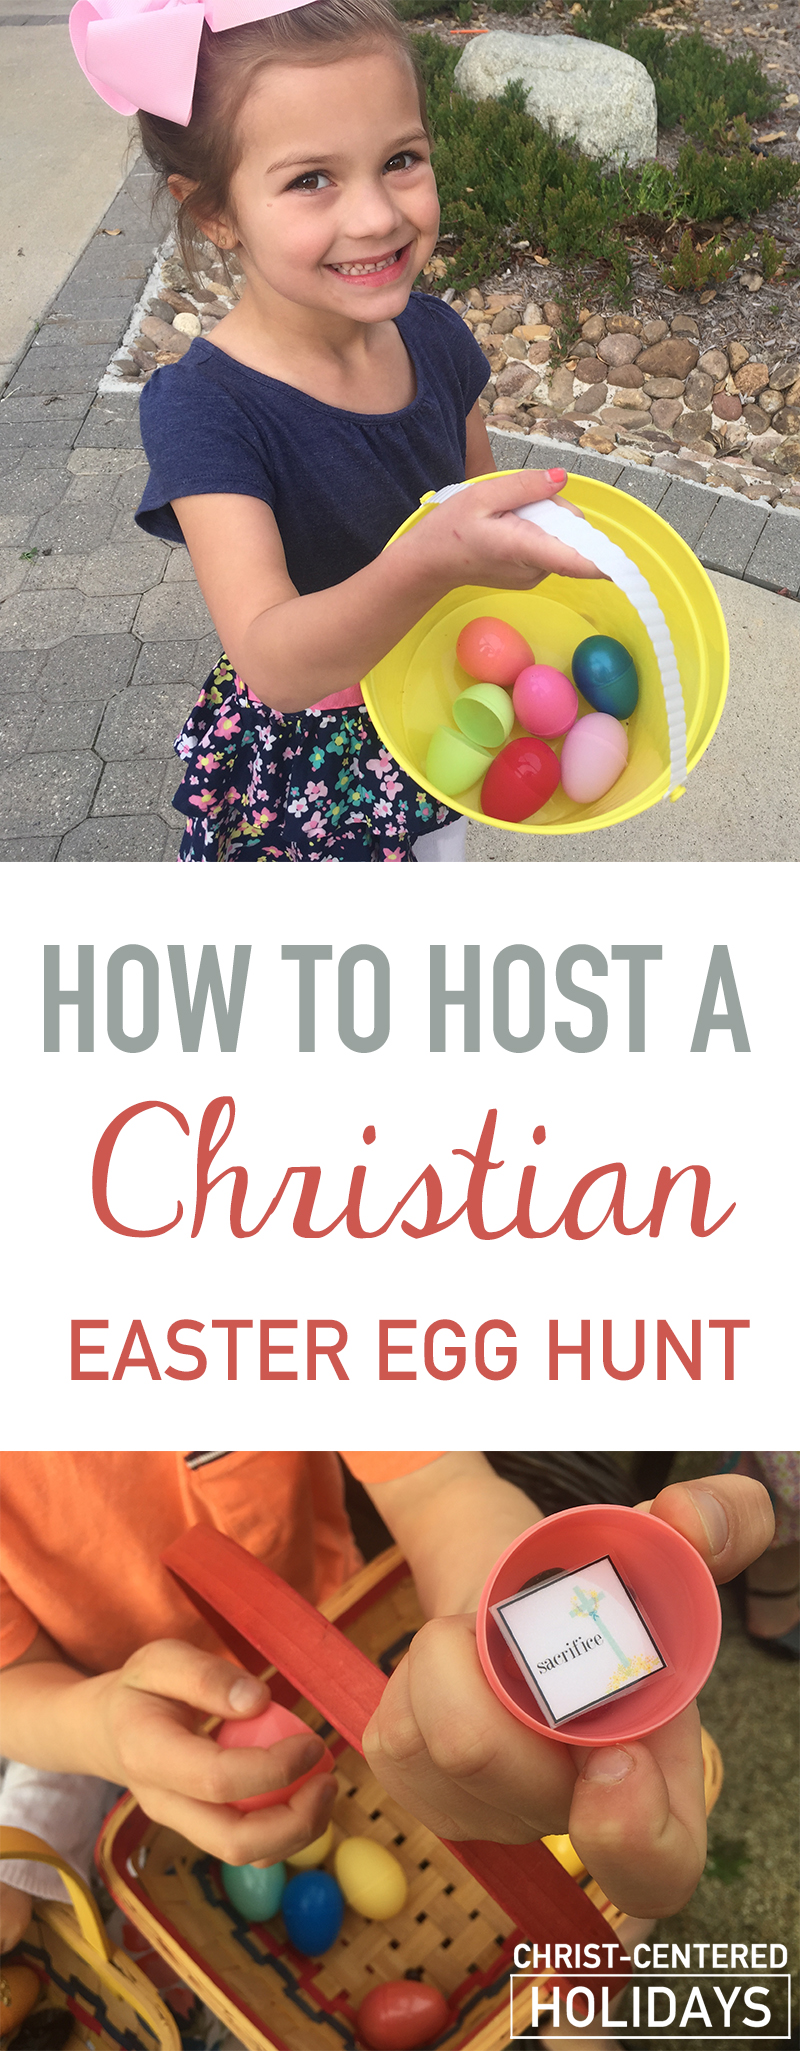 christian easter egg hunt | christian easter egg hunt alternatives | christian easter egg scavenger hunt | christian easter egg hunt ideas | printable easter egg hunt | easter crafts kids | Easter games kids | easter activities | easter activities for kids